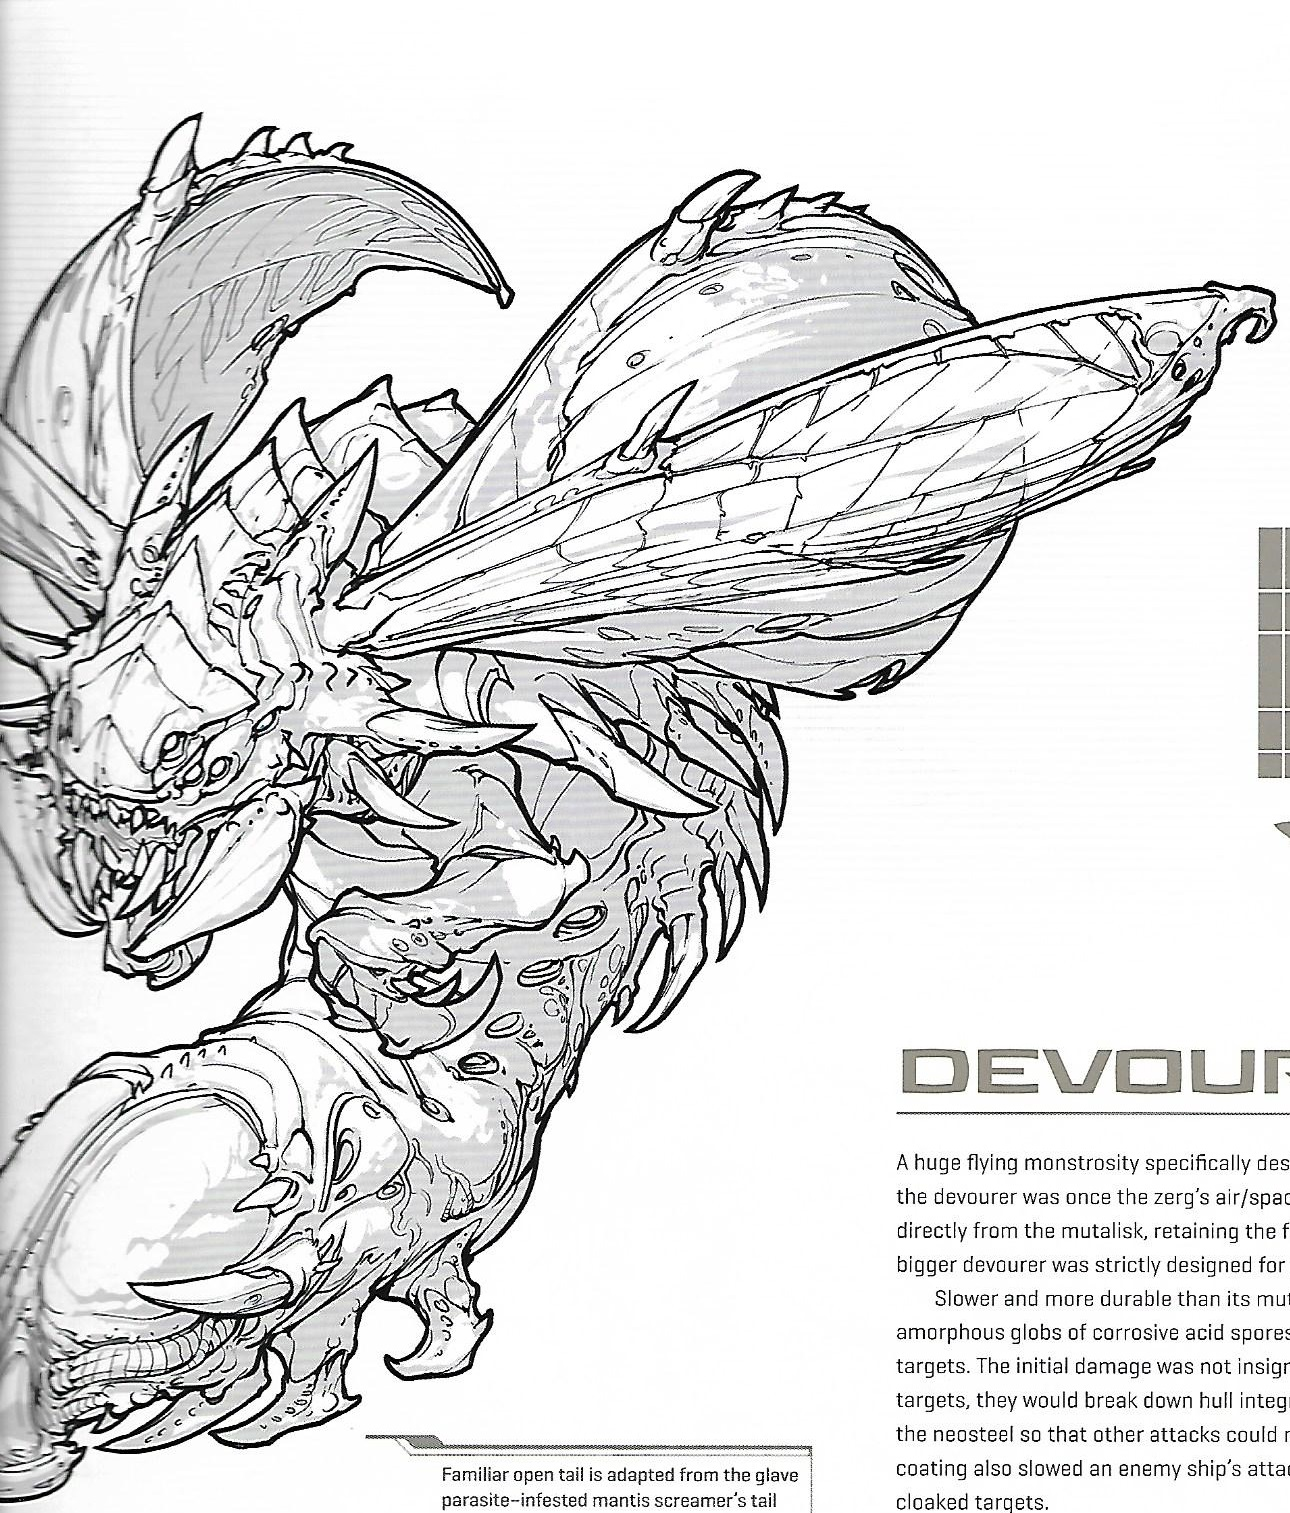 The Devourers Current Morphology